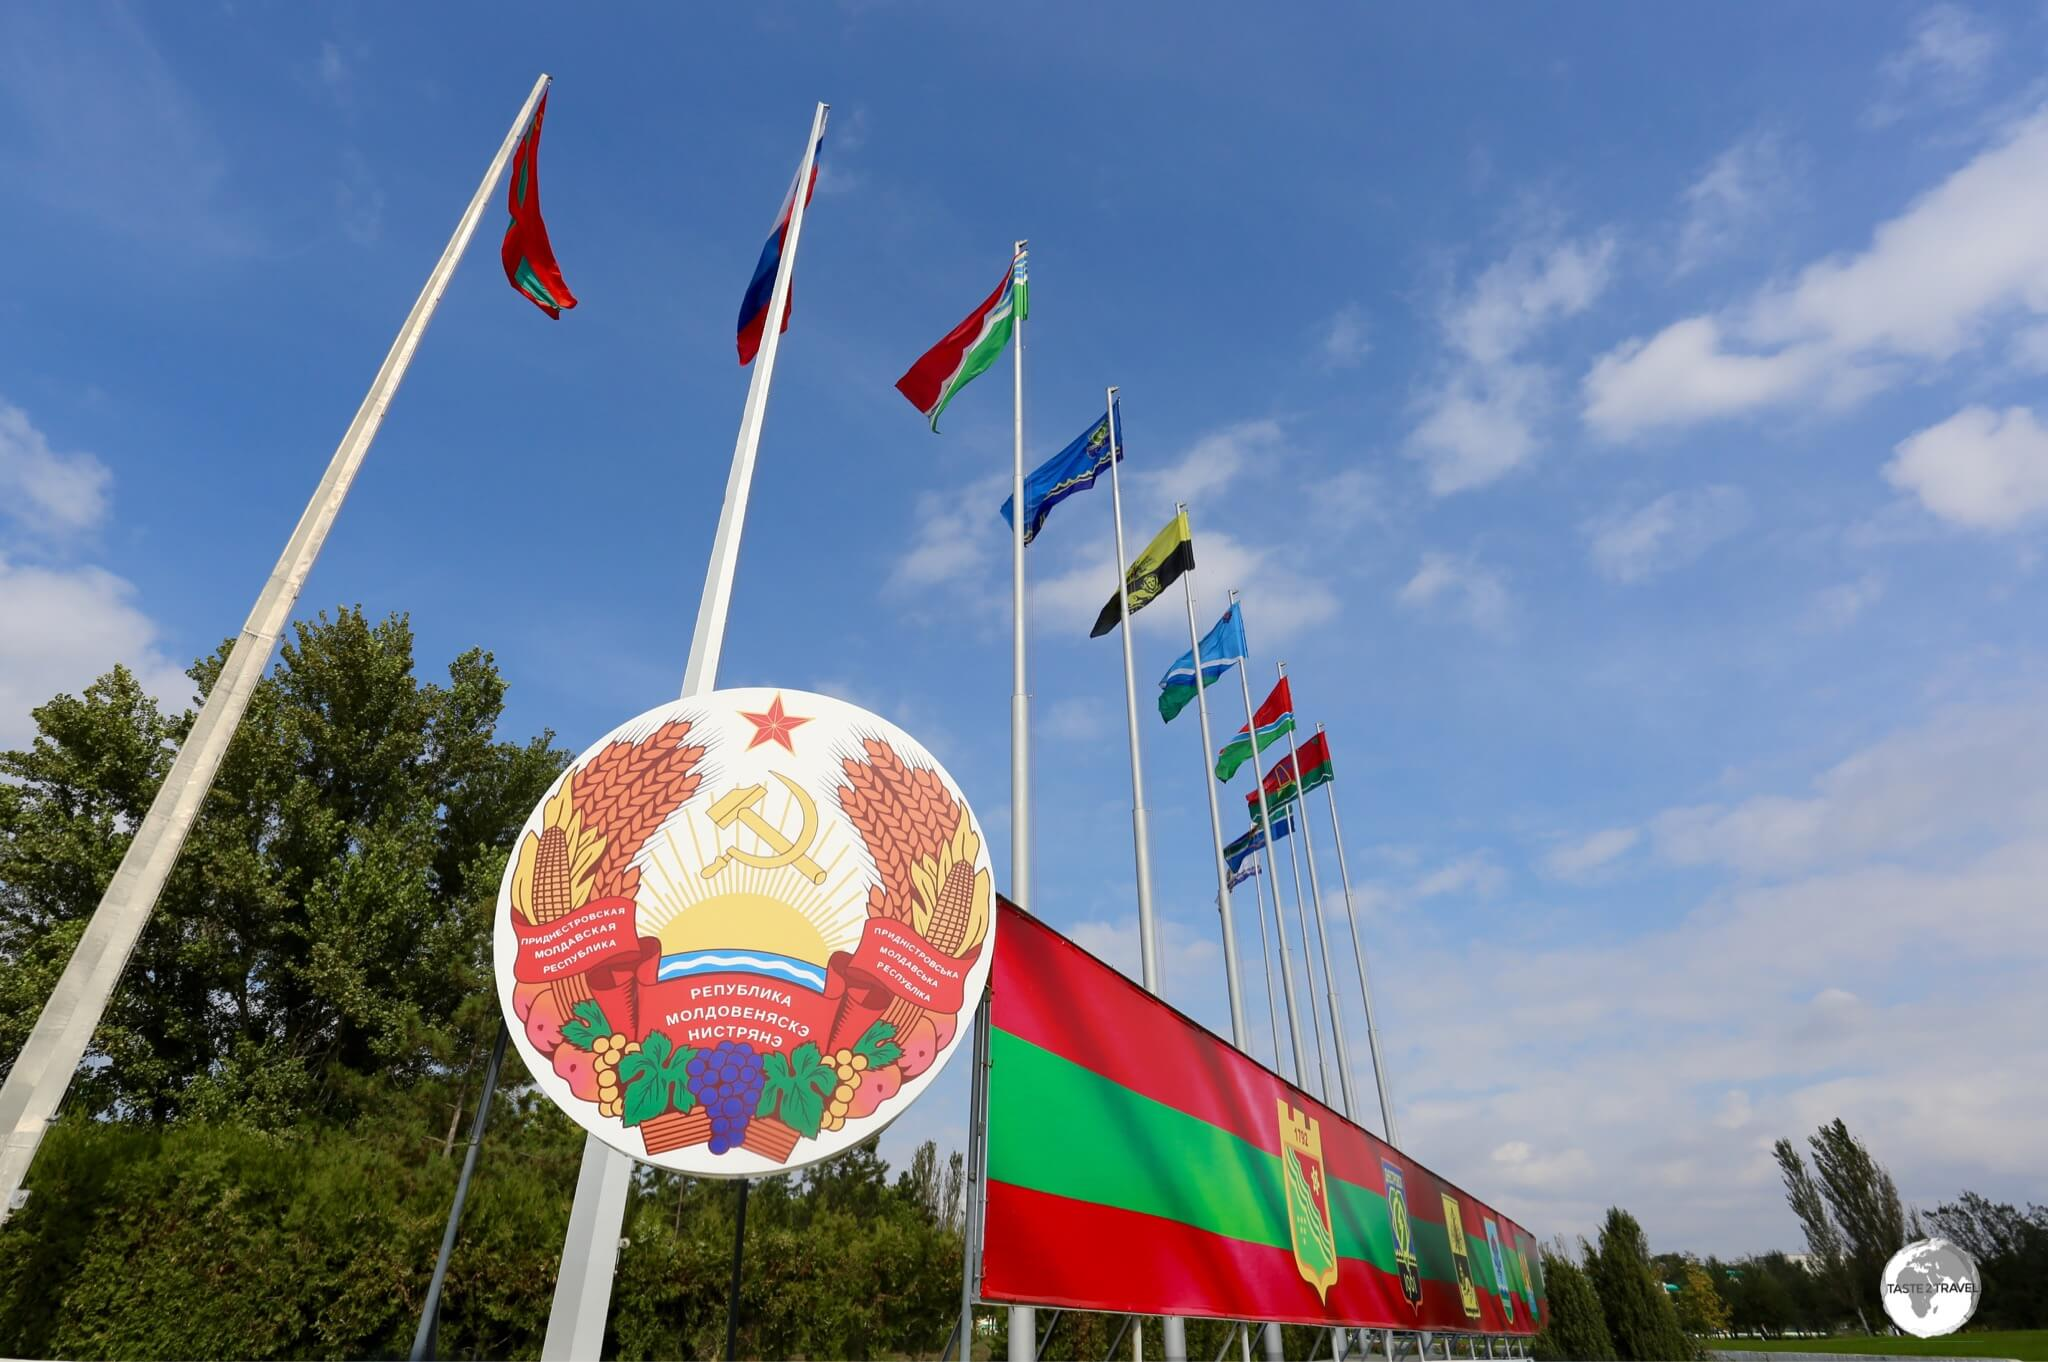 The coat of arms of Transnistria with the flags of (l-r) Transnistria, Russia and the different districts of Transnistria.